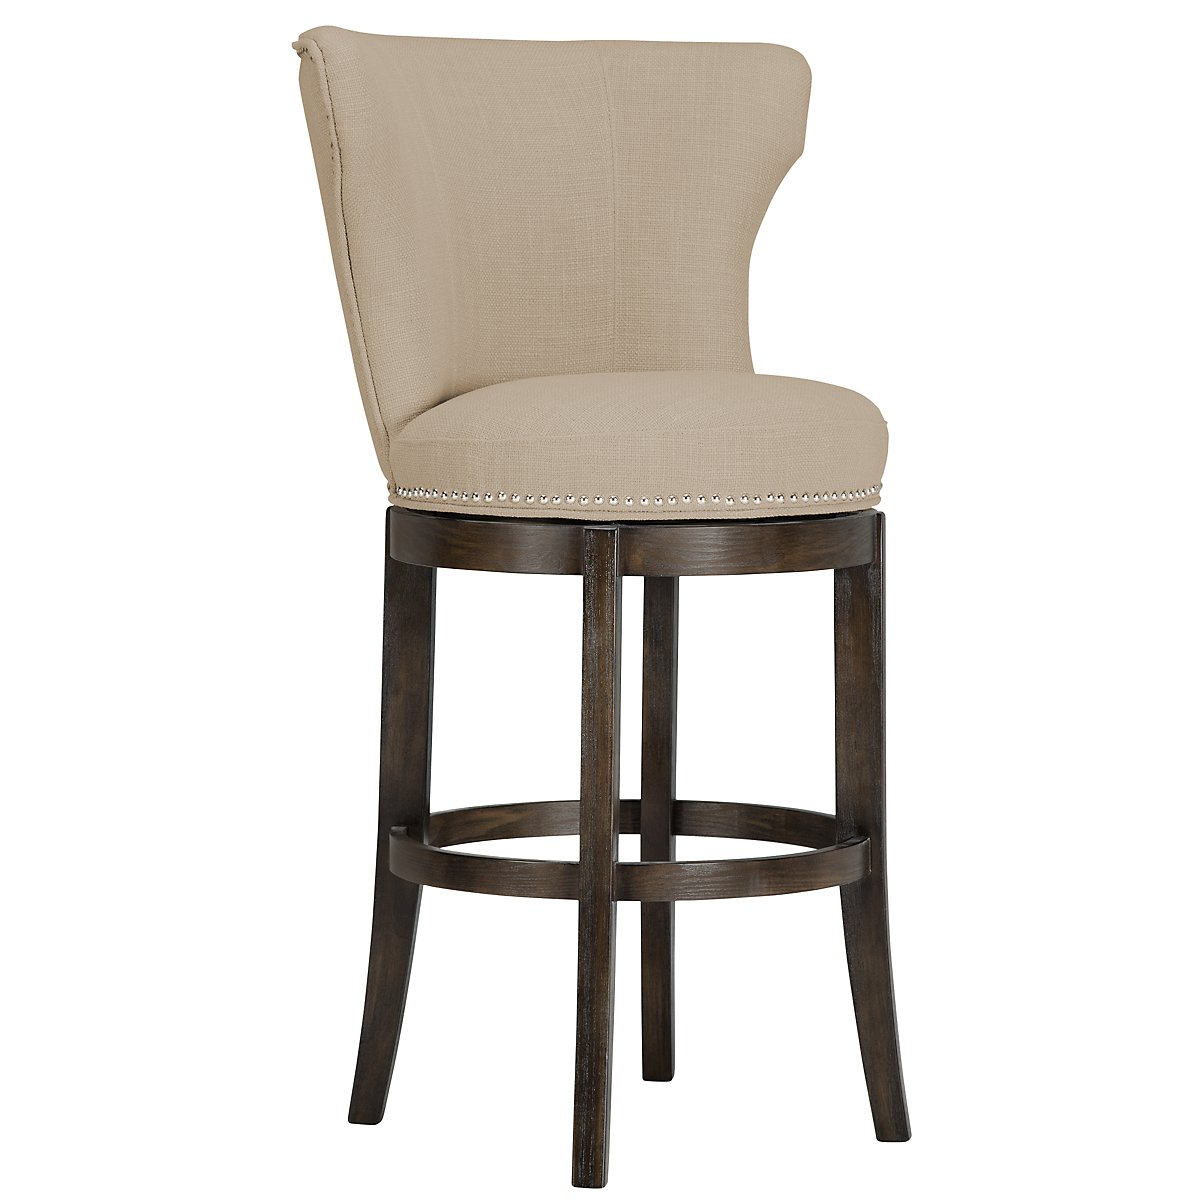 "Cayden Taupe Fabric 30"" Swivel Barstool"